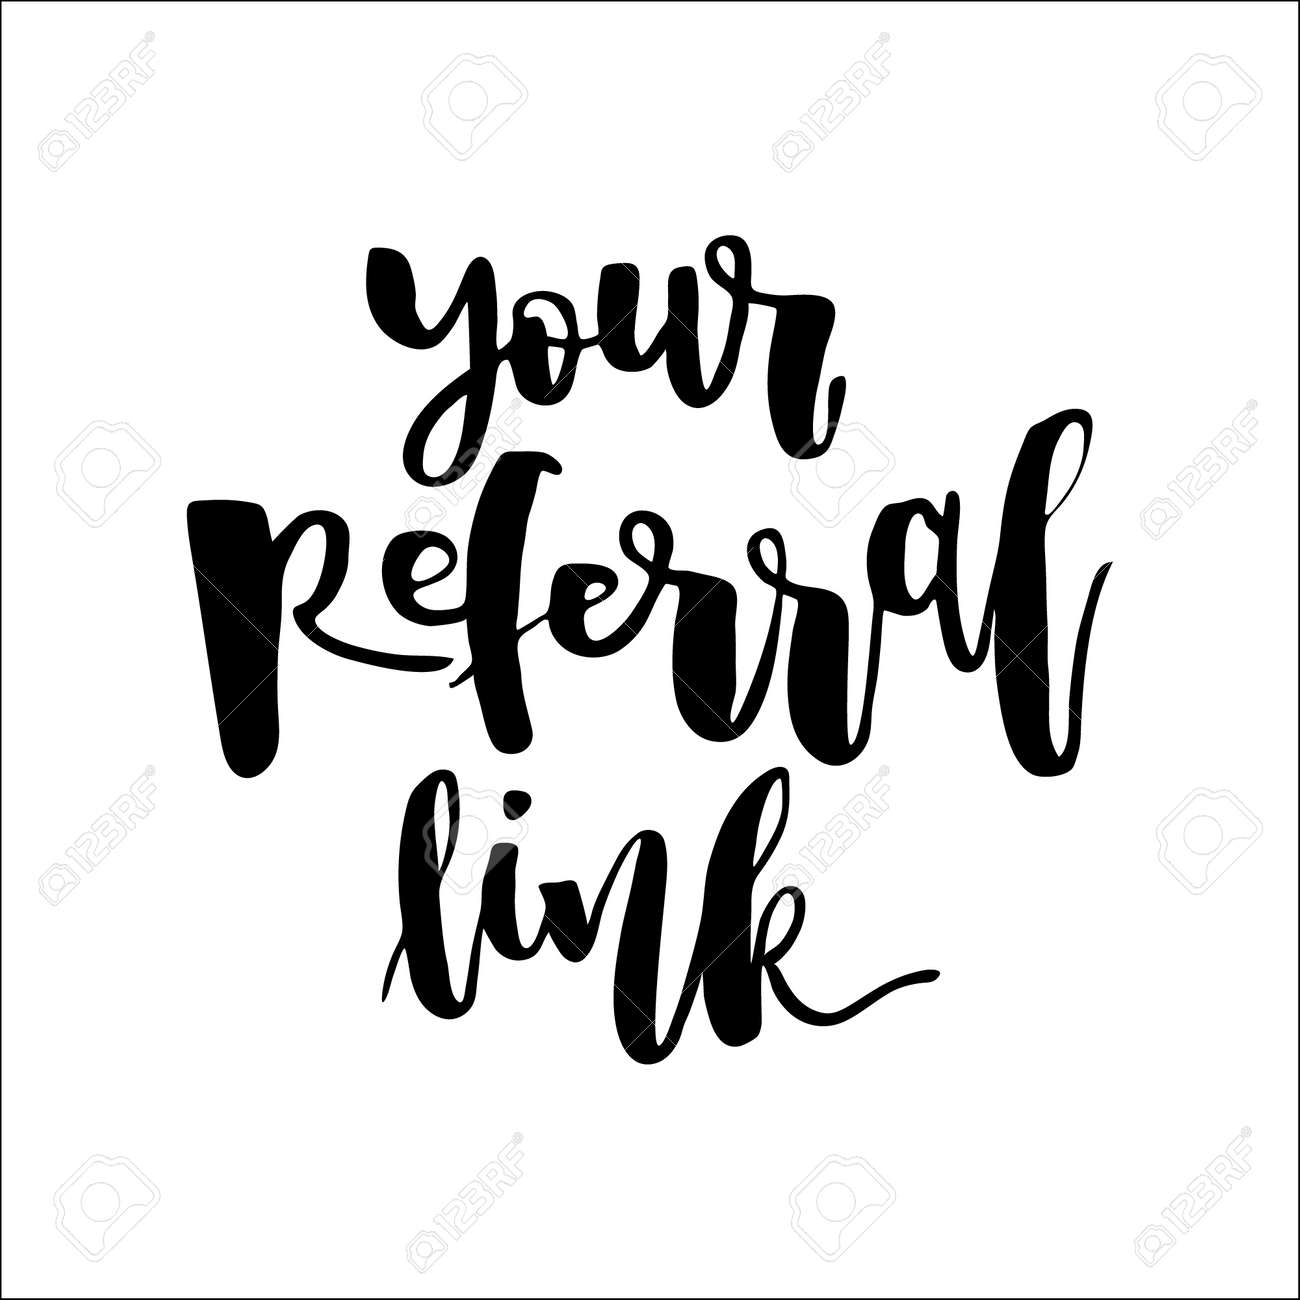 Refer a friend vector lettering. Referral marketing phrase isolated on white background. Handwritten brush pen calligraphy poster for loyalty program. Attract customers flyer. Start referring, invite - 131434389